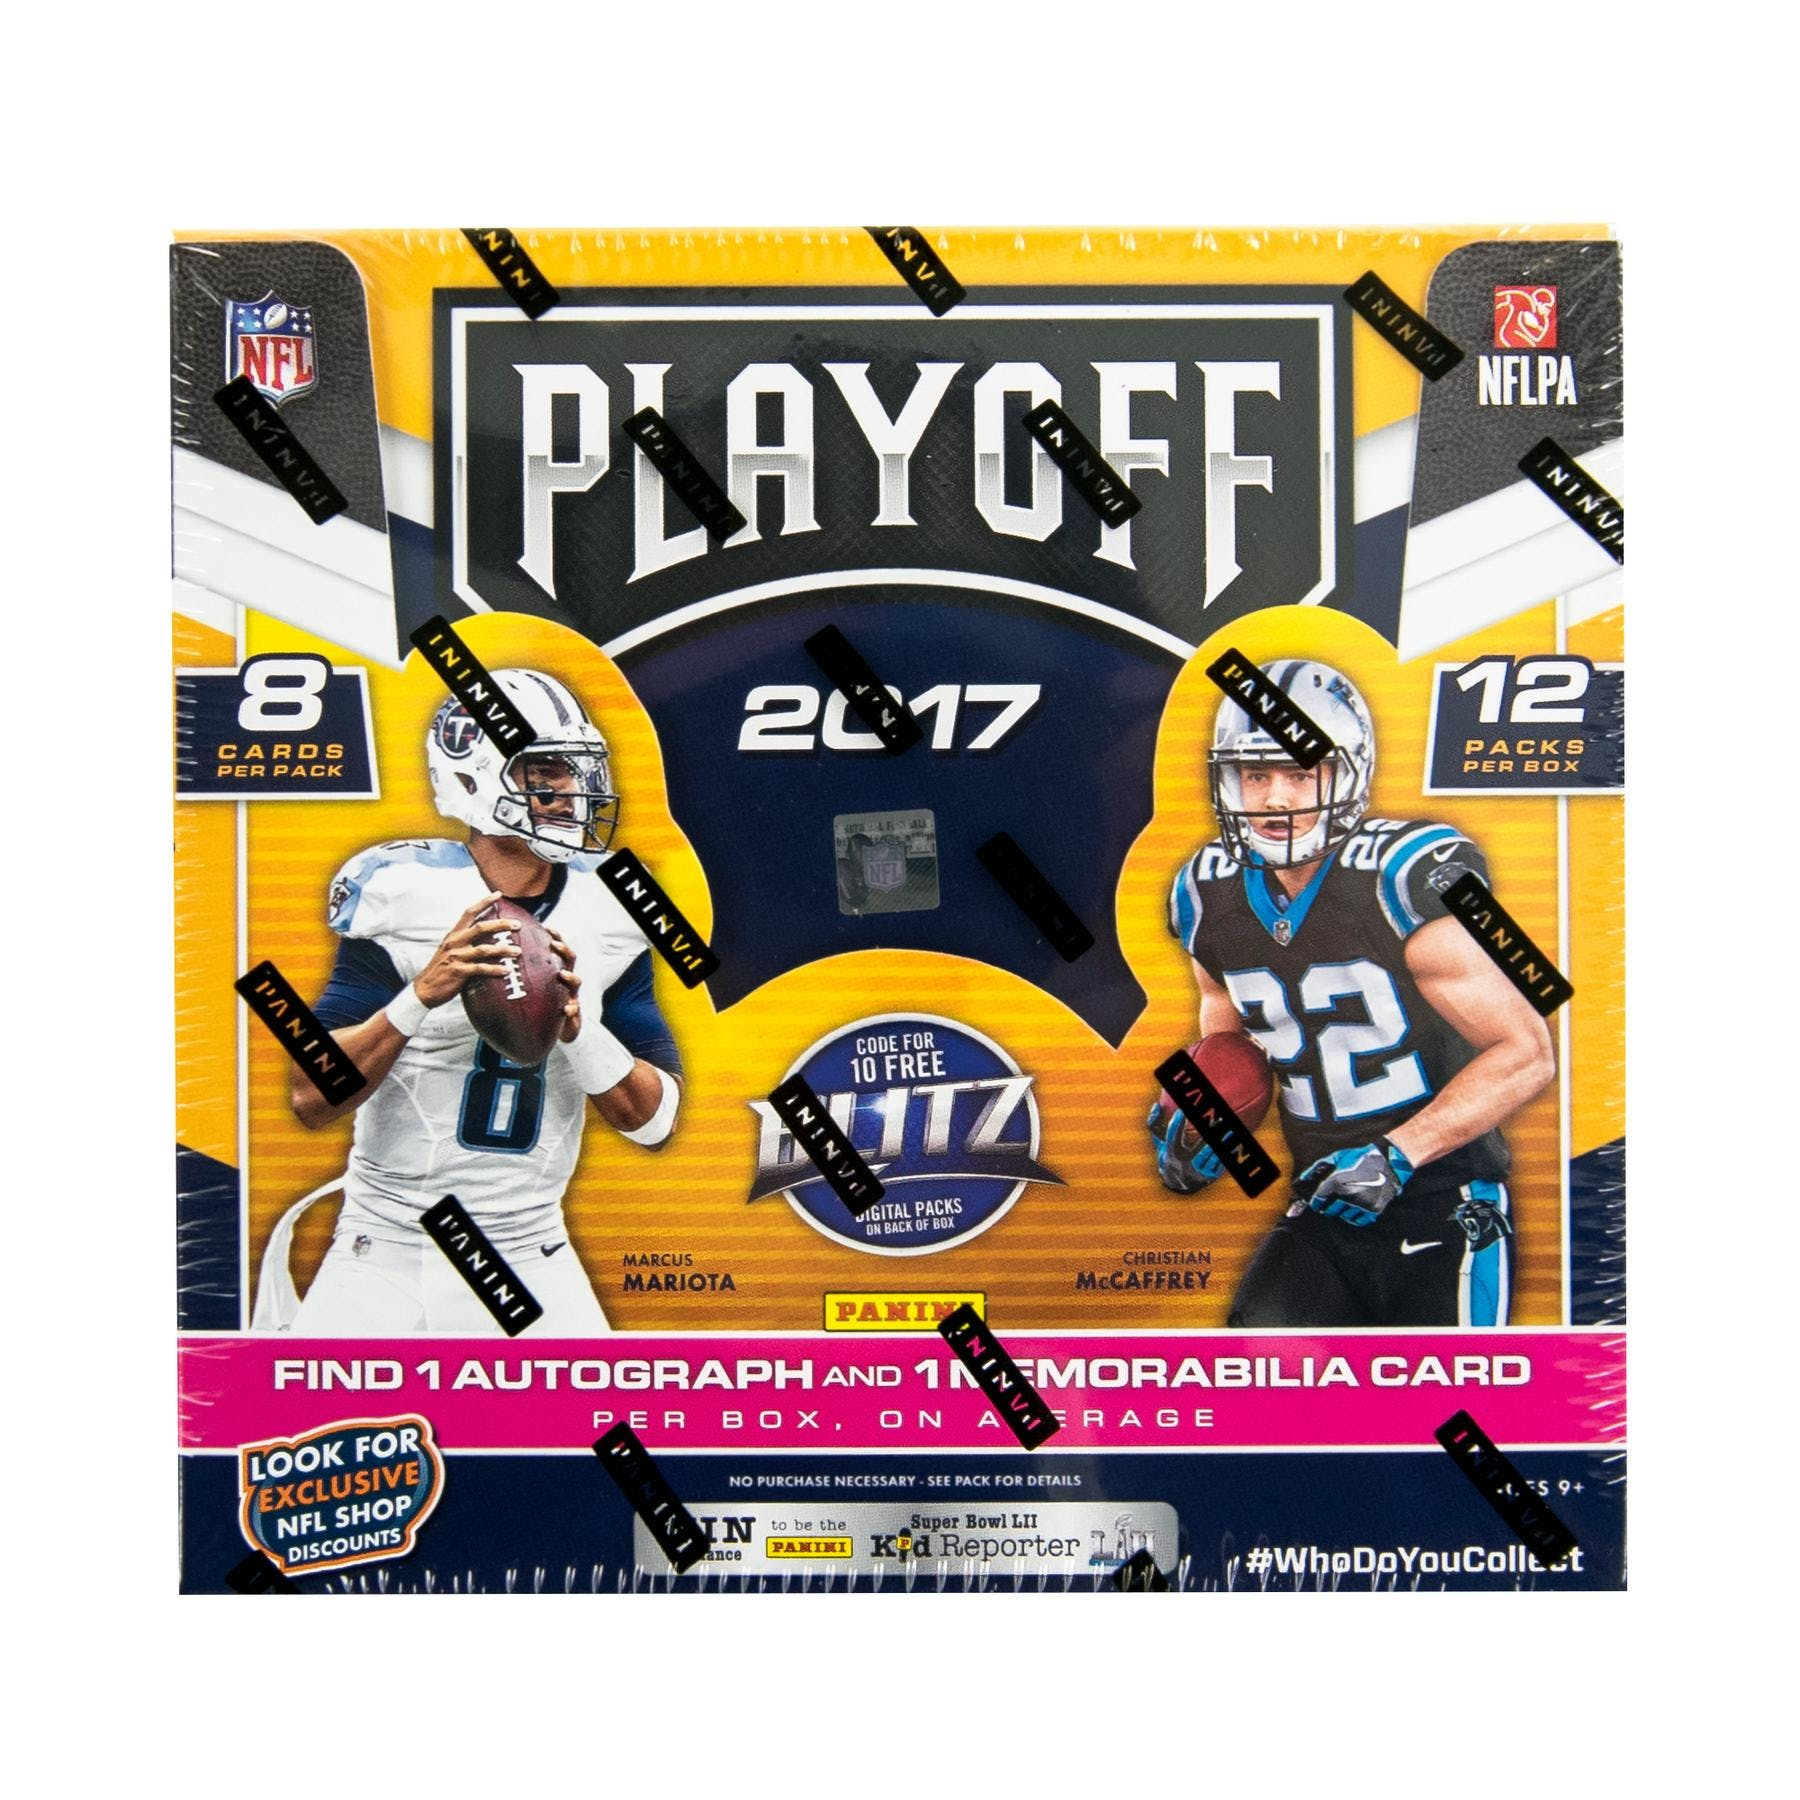 9e530847a 2017 Panini Playoff Football Hobby Box + 1 FREE 2018 FATHER S DAY PACK!